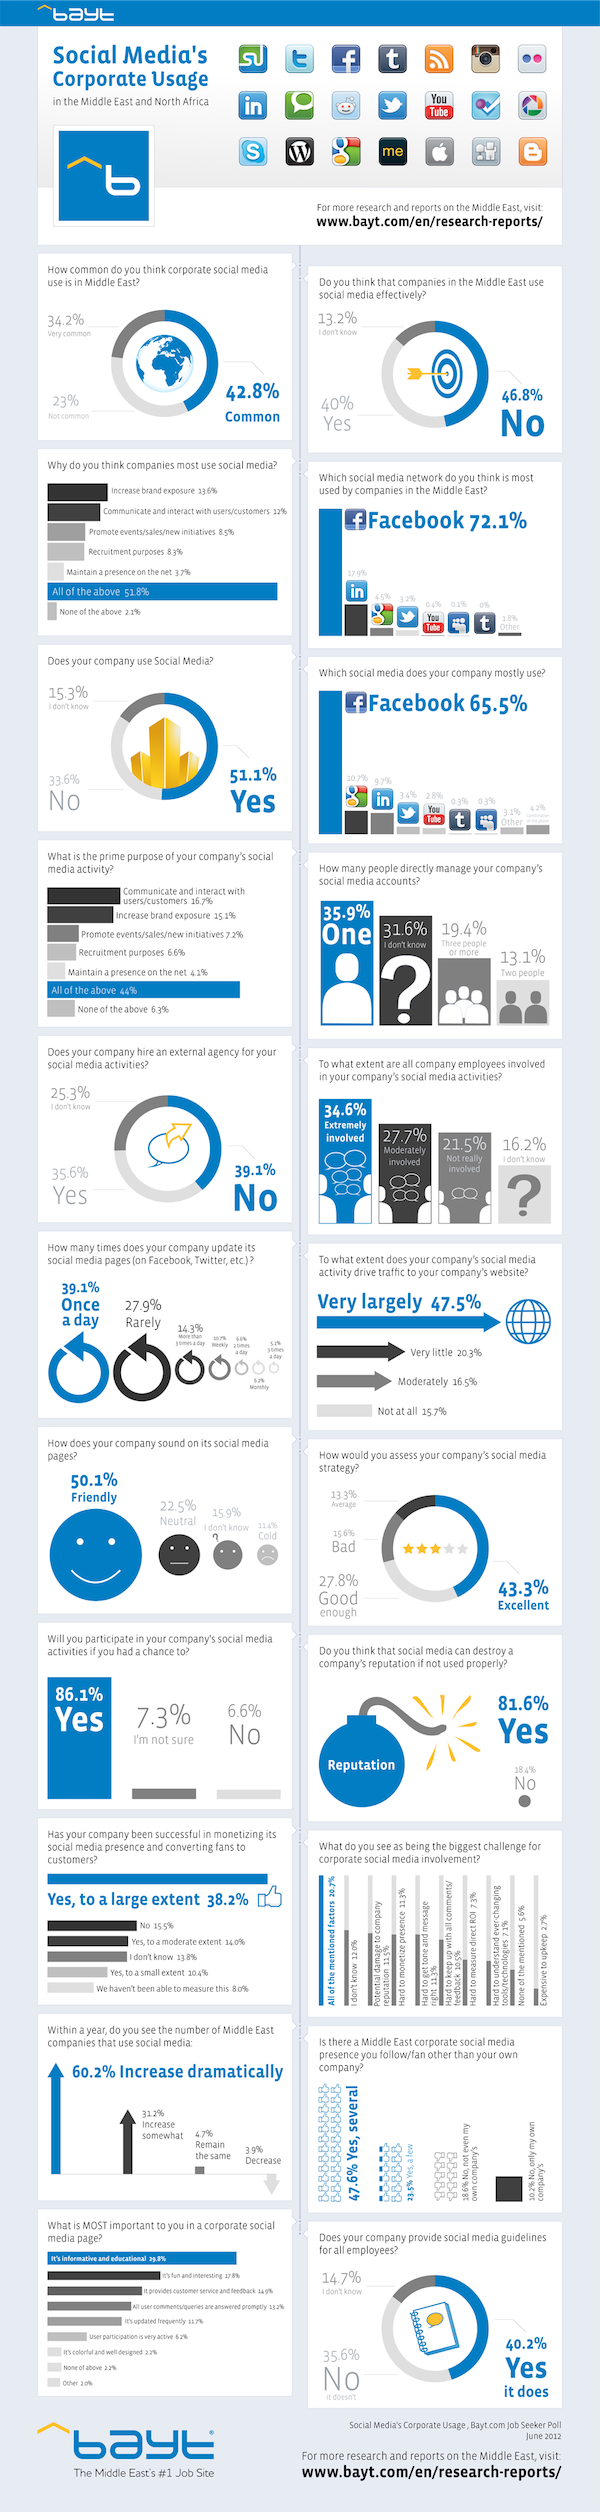 Social-Media-In-The-Middle-East-infographic